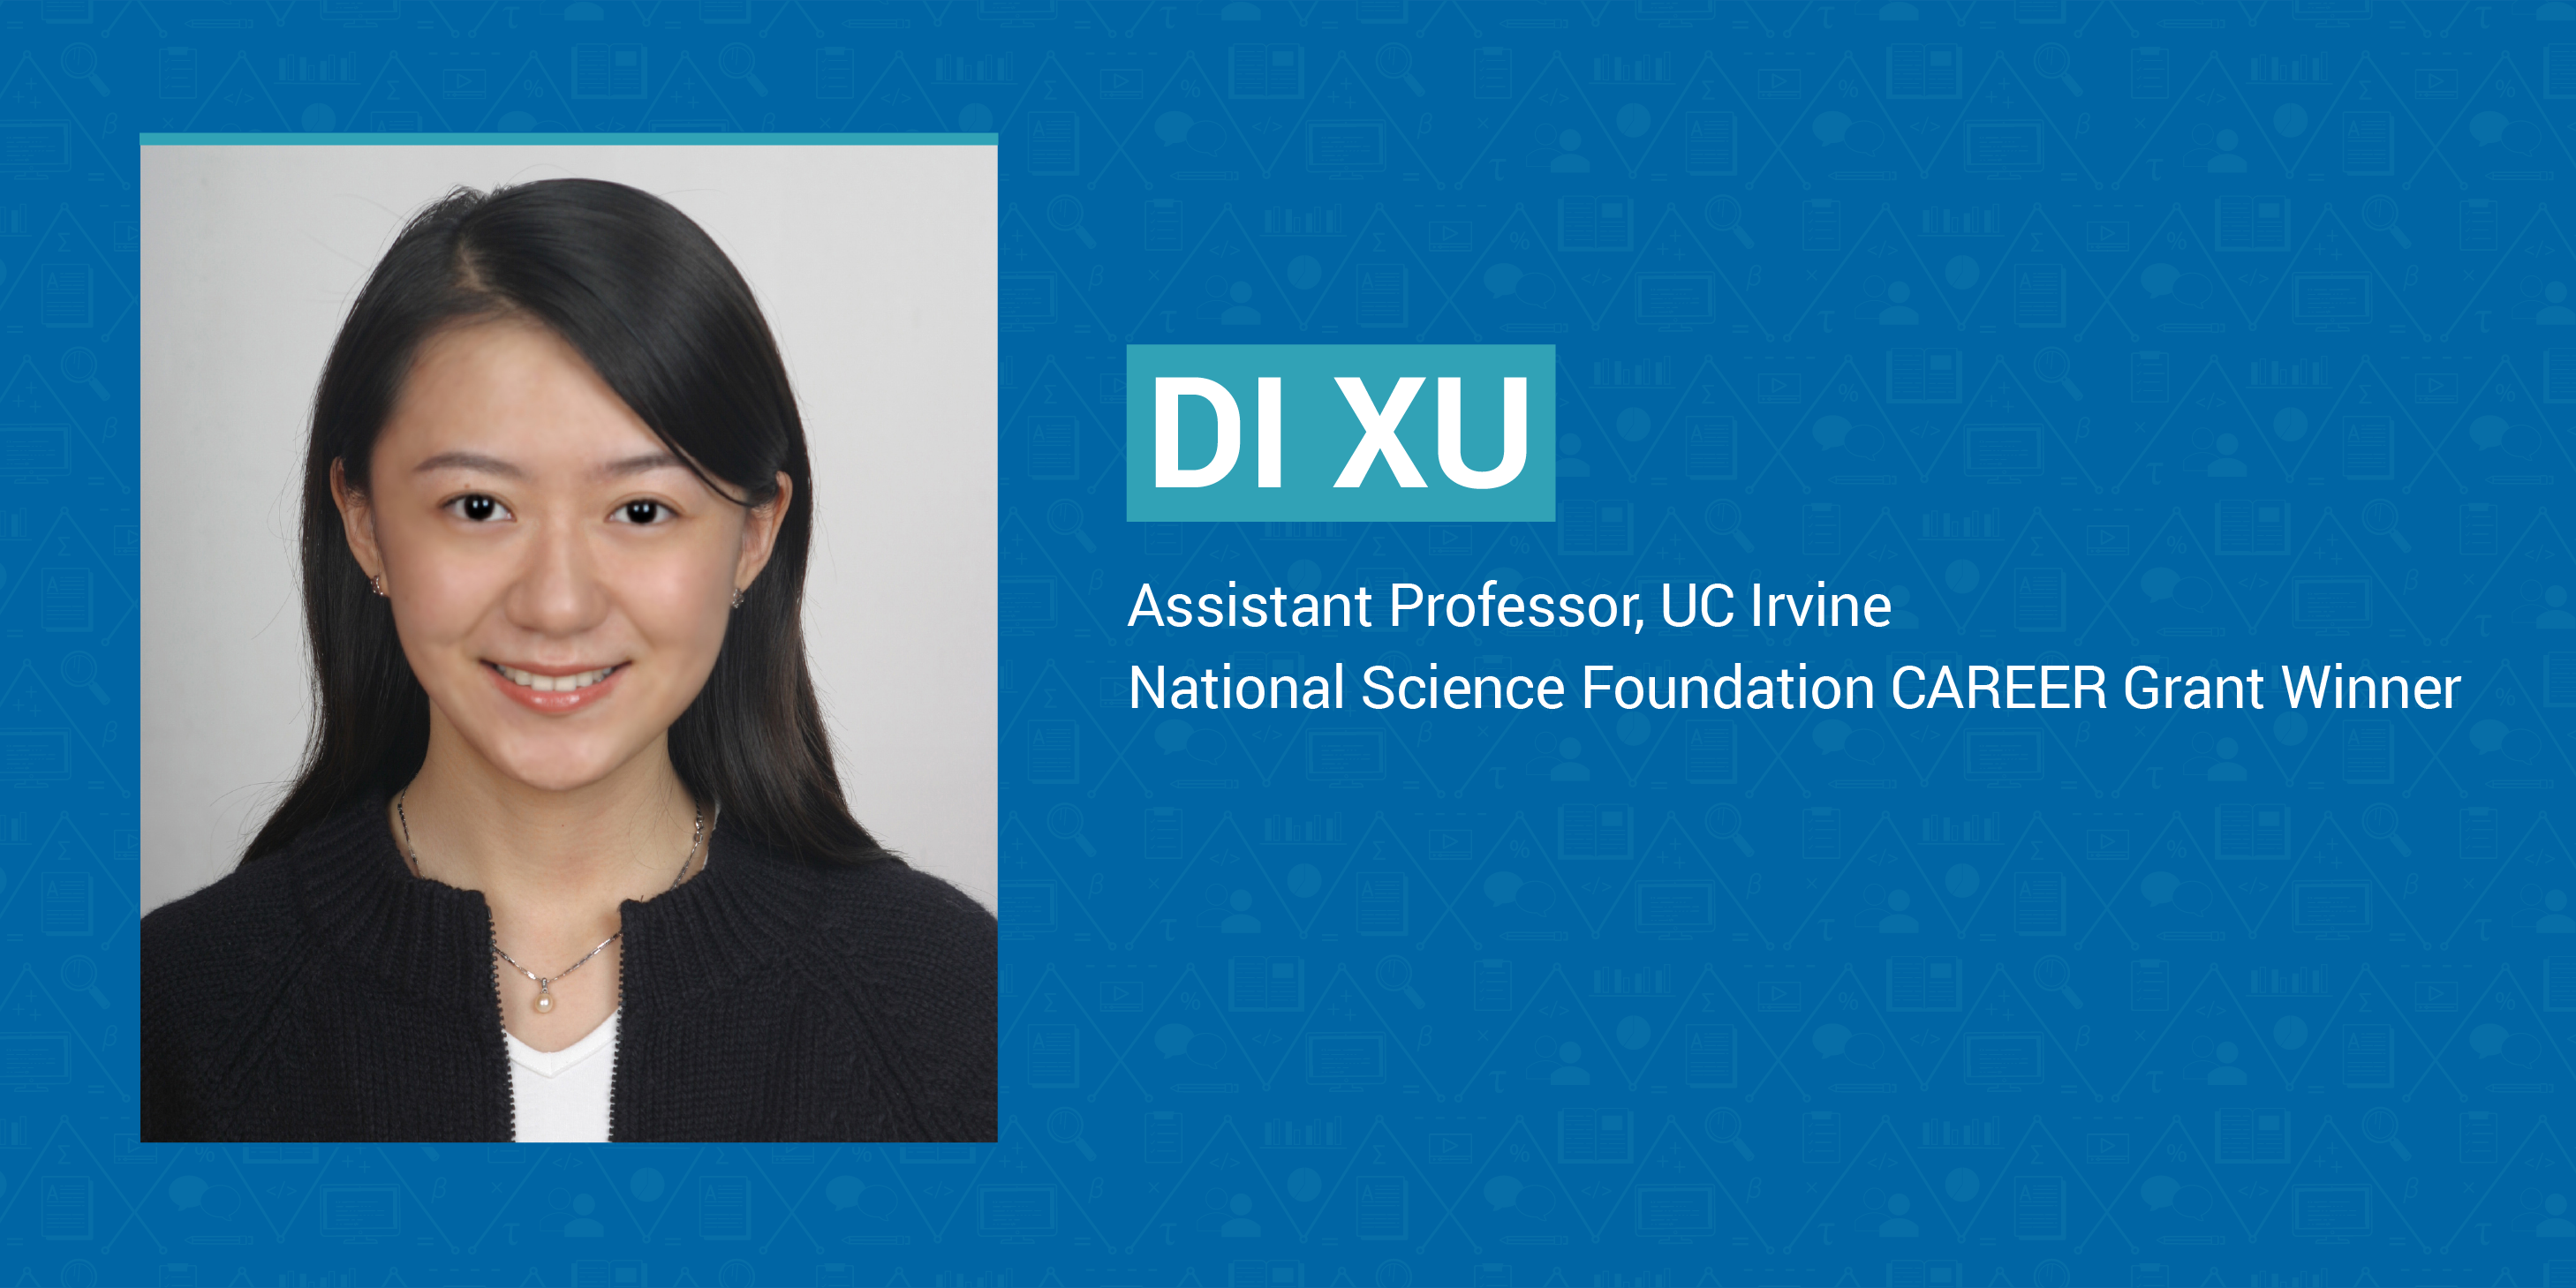 CCRC Affiliate Di Xu Recognized for Her Research With Major Grants and Awards